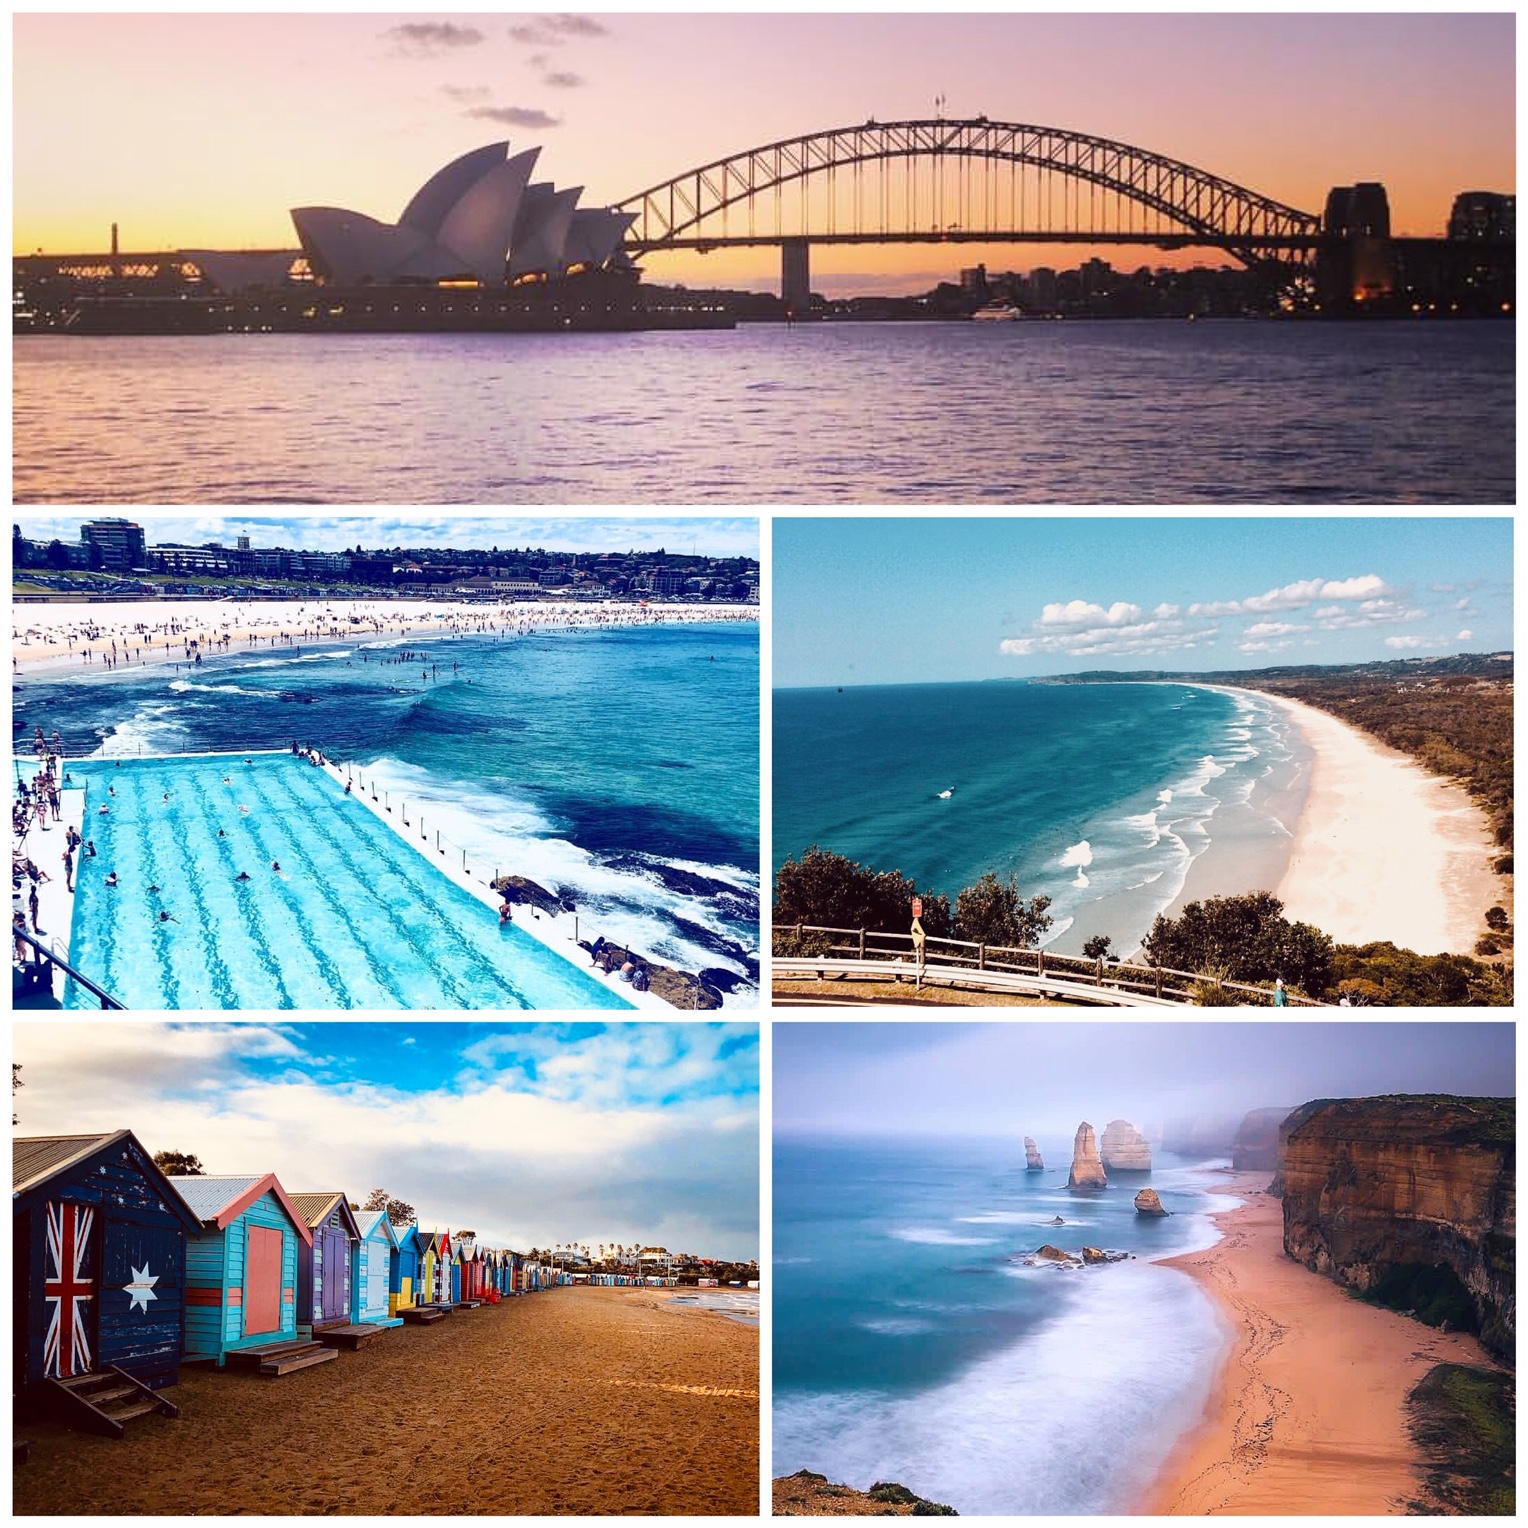 1. Sydney Opera House/Harbour Bridge Skyline waterfront view at Royal Botanic Gardens - Mrs. Macquarie's Chair Point, Sydney, Australia    2. Bondi Beach Iceberg Swimming Pool, Sydney, Australia    3. Byron Bay Beach Cliff View at Tallow Beach/Cape Byron State Conservation Area    4. Brighton Bathing Beach Boxes, Melbourne, Australia    5. The Twelve Apostles Beach View, Great Ocean Road, Victoria, Australia